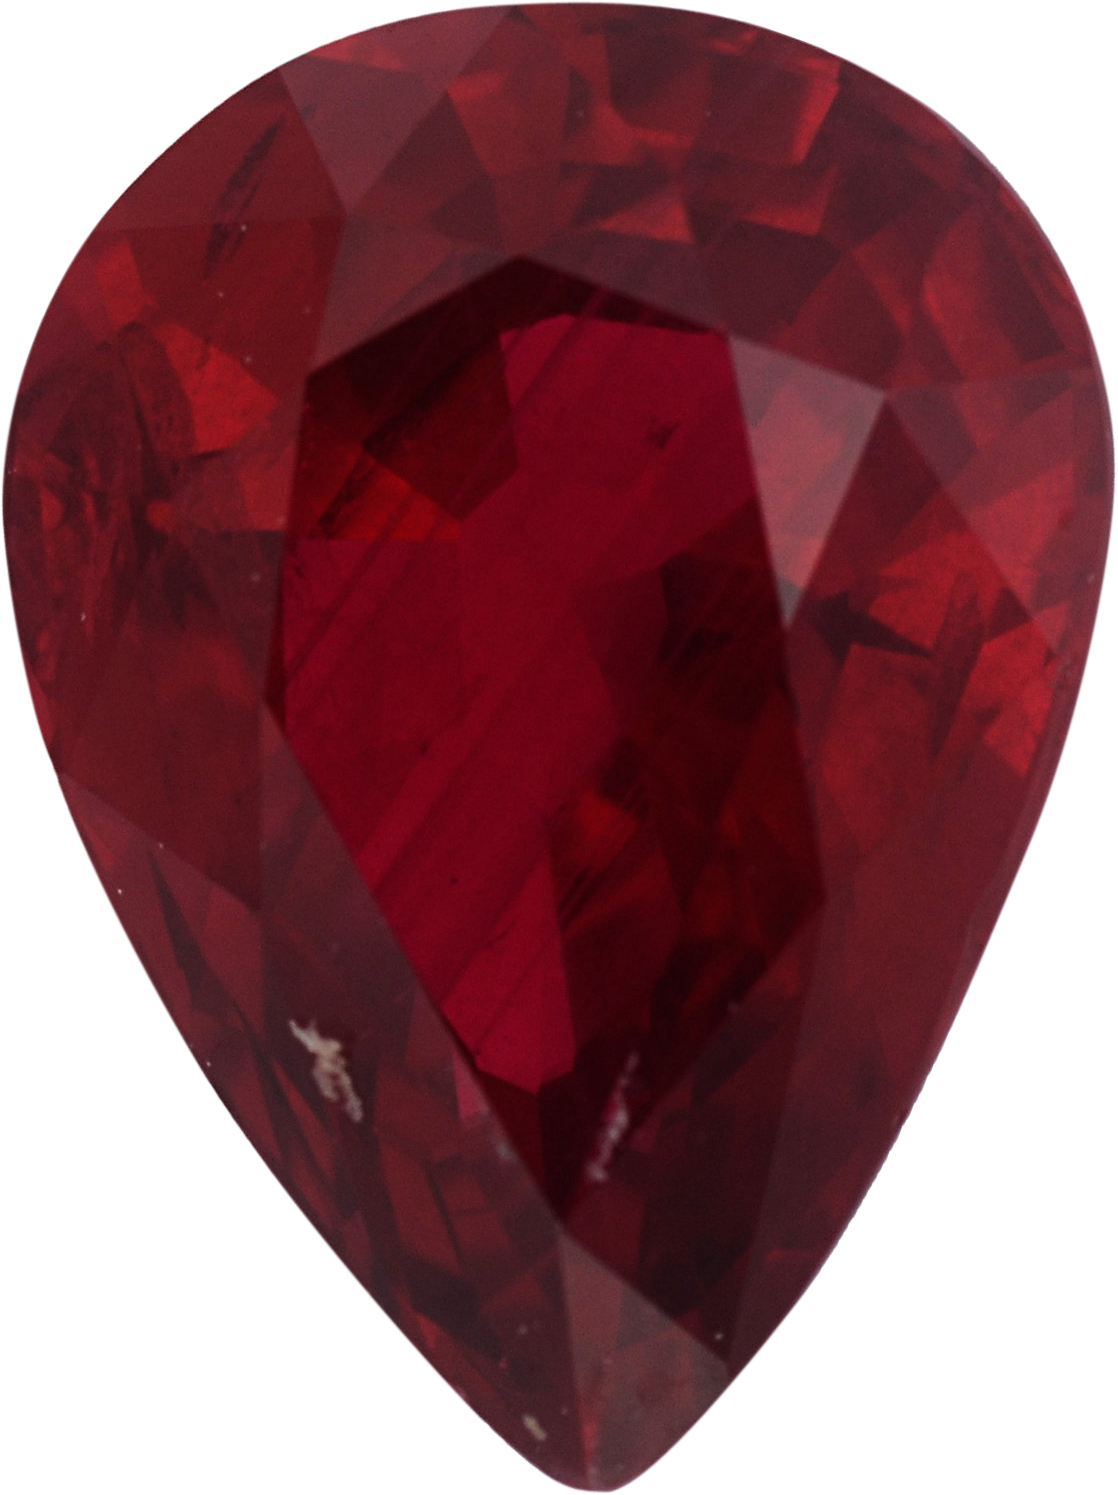 Bright Pear Shape Loose Ruby Gem,  Red Color, 8.95 x 6.72 mm, 1.97 carats